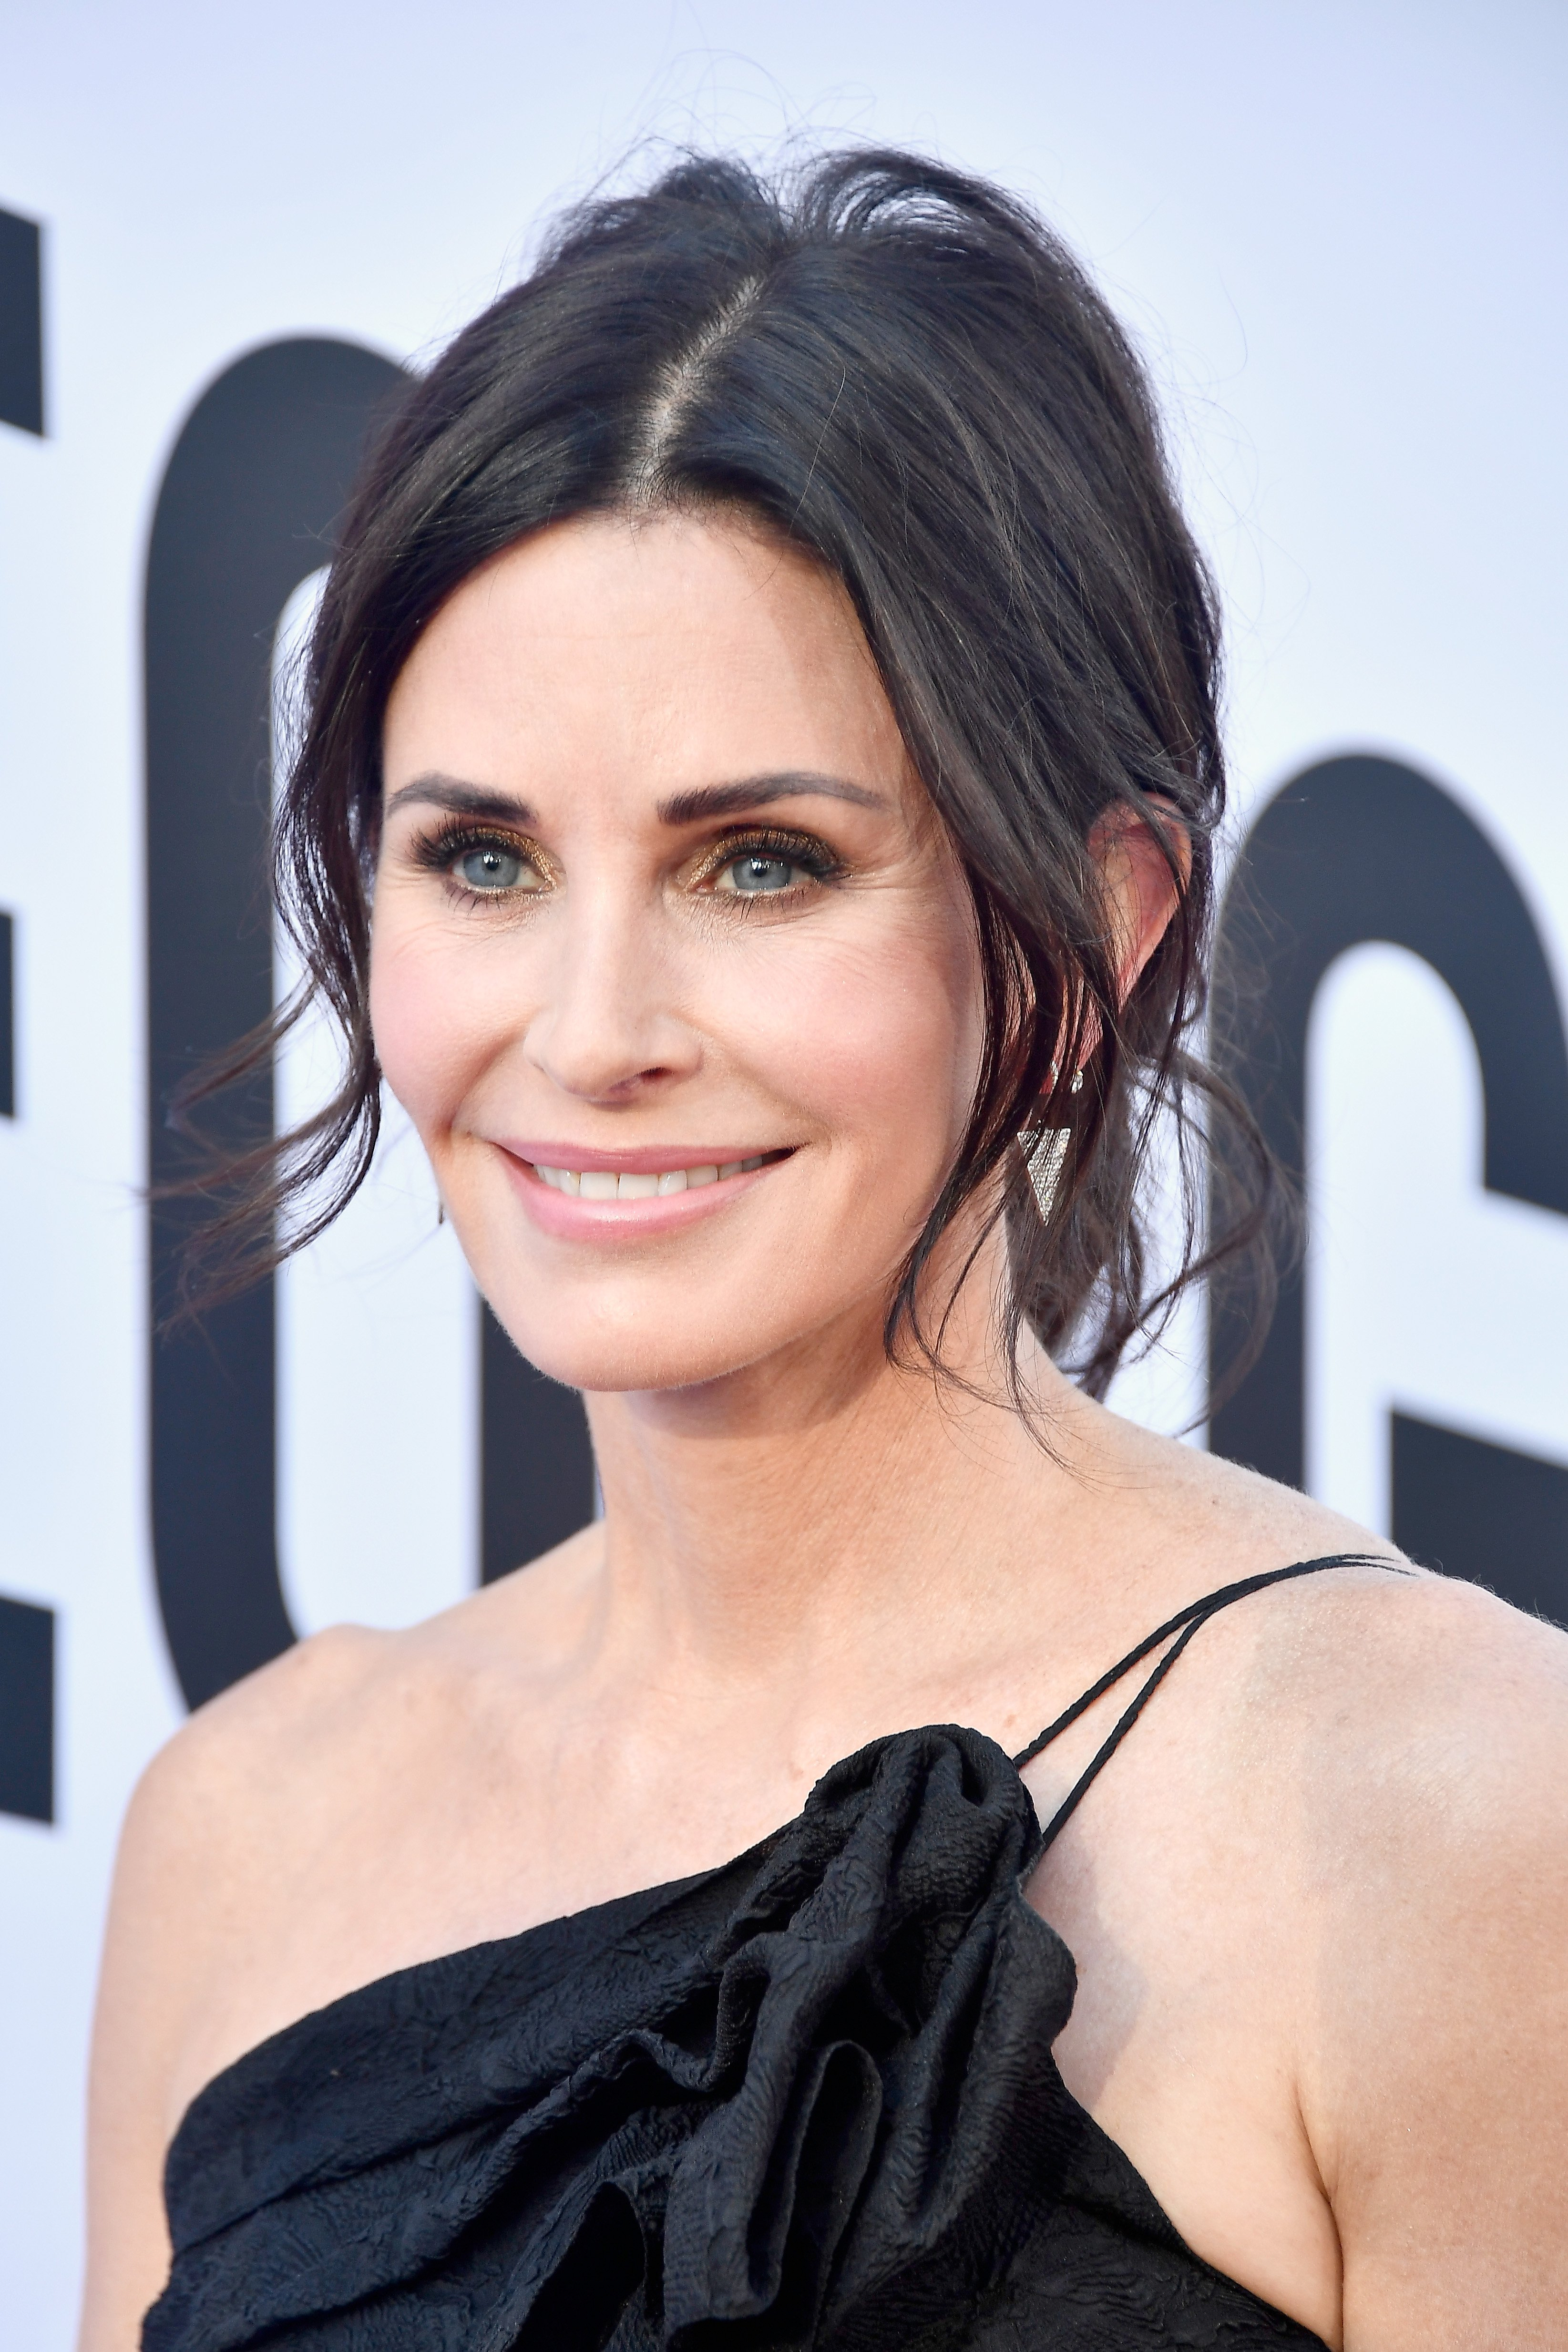 Courteney Cox attends the American Film Institute's 46th Life Achievement Award Gala Tribute to George Clooney at Dolby Theatre on June 7, 2018|Photo: Getty Images